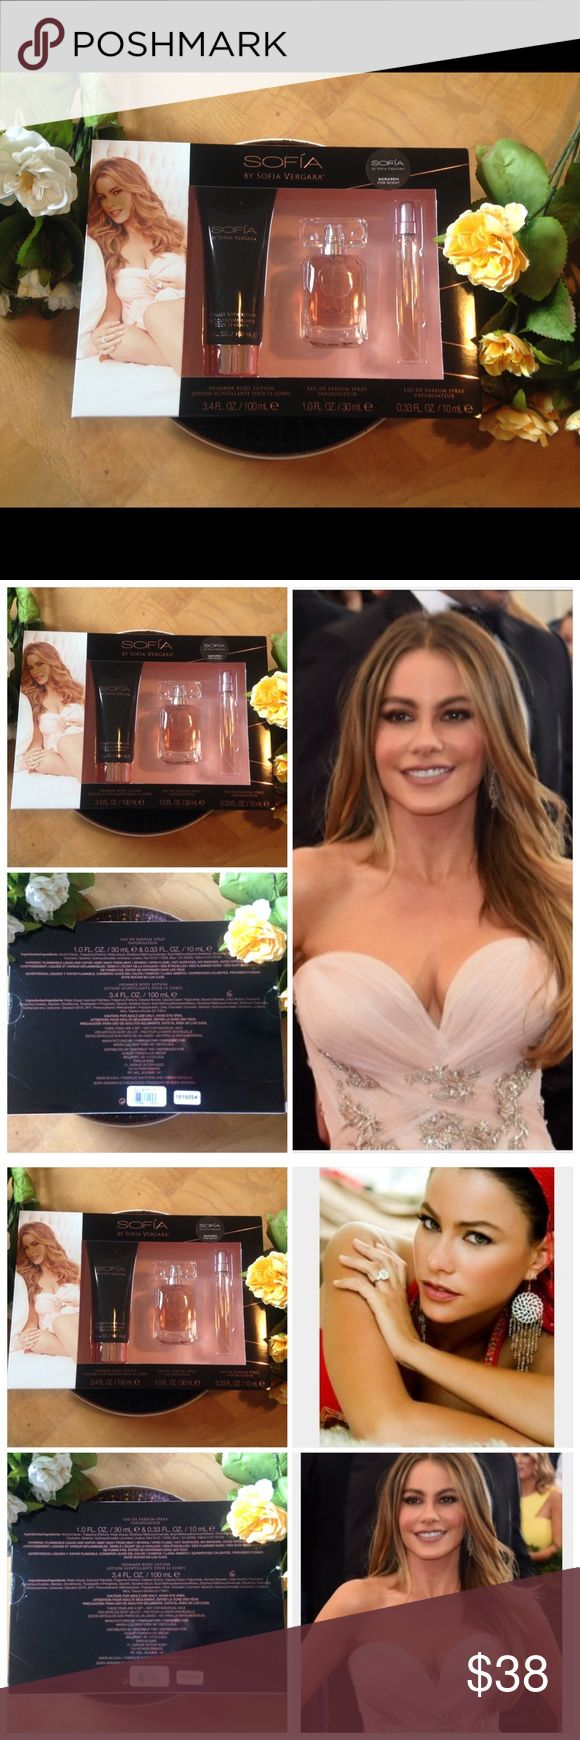 SALE‼️🌹Sofia🌹 By Sofia Vergara 3pc Set🌹😍💃 🌹Sofia by Sofia Vergara🌹3pc. Set❤️ 🌿3.4 Fl. Oz/100 mL Shimmer Body Lotion🌿 Eau De Parfum Spray🌿 1.0 Fl. Oz./30mL🌿 Eau De Parfum Spray🌿0.33 Fl. Oz./10mL ( ❤️Perfect for bringing in your purse❤️).  Scent is absolutely heavenly👼!!!:) 💕Passionately constructed fragrance that possesses a blend of Blackberry, Sparkling Cassis Buds, Plum, Purple Violet, Columbian Rose, Columbian Orchid, Earthy Woods, Vanilla, & Sandalwood.💕 Brand New in Box…